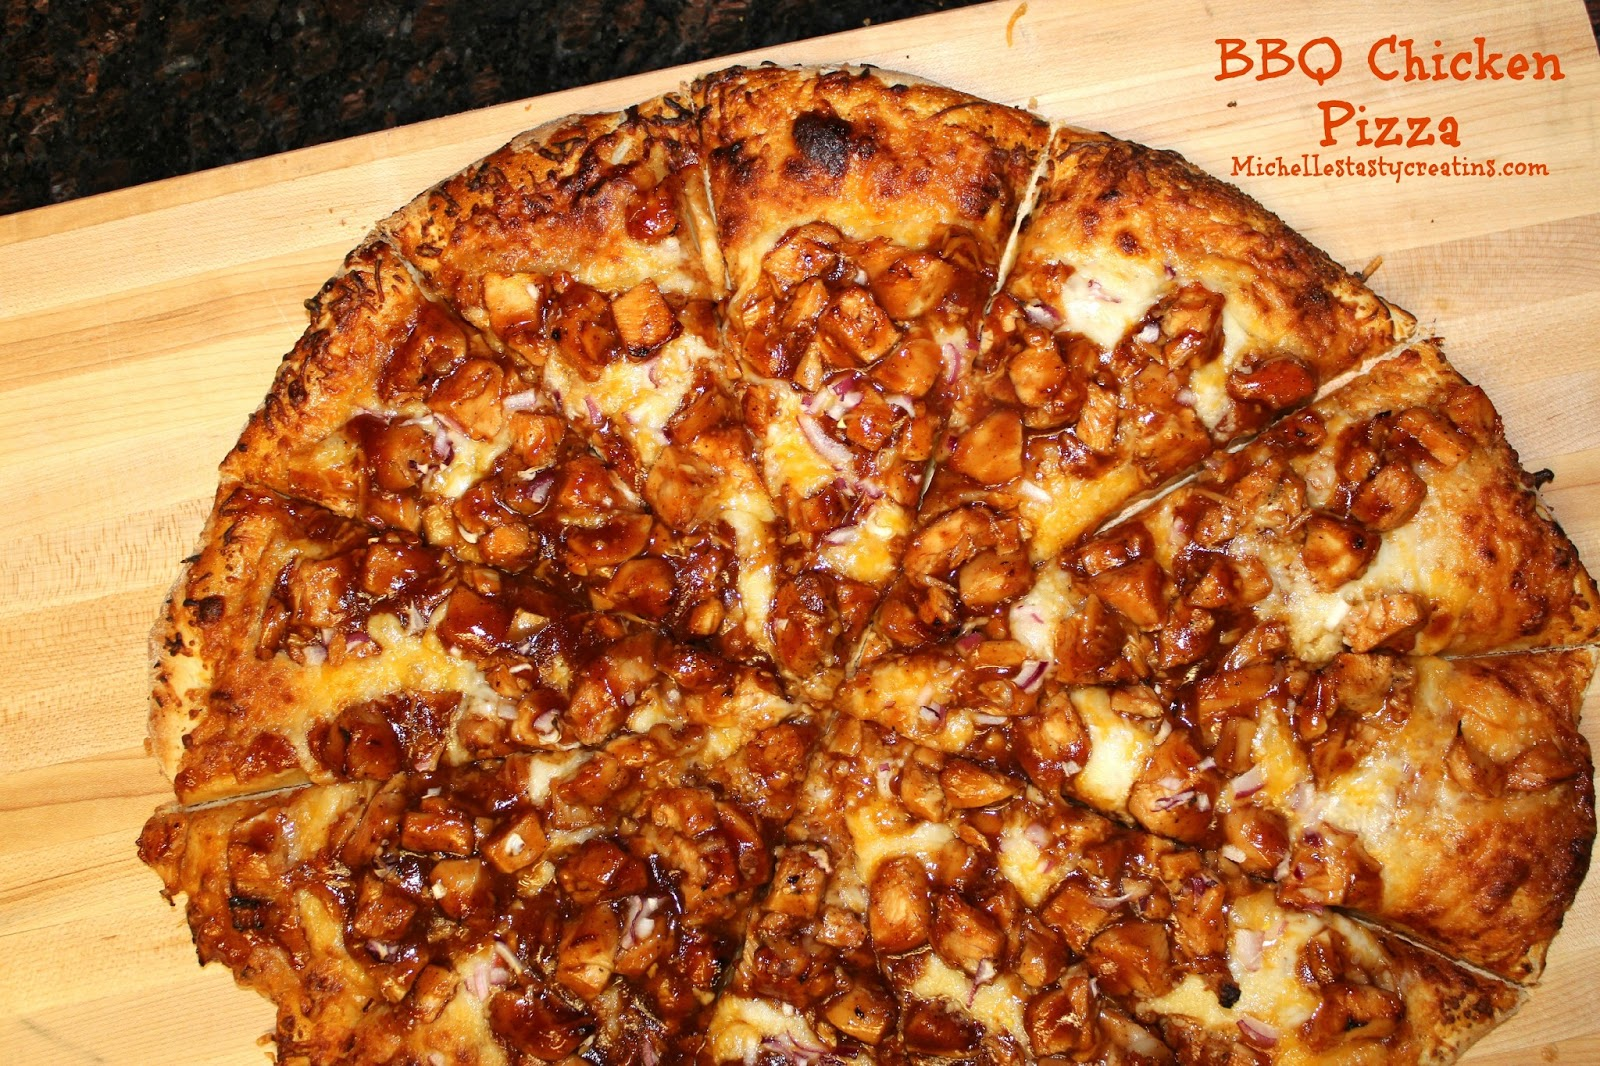 Michelle's Tasty Creations: BBQ Chicken Pizza